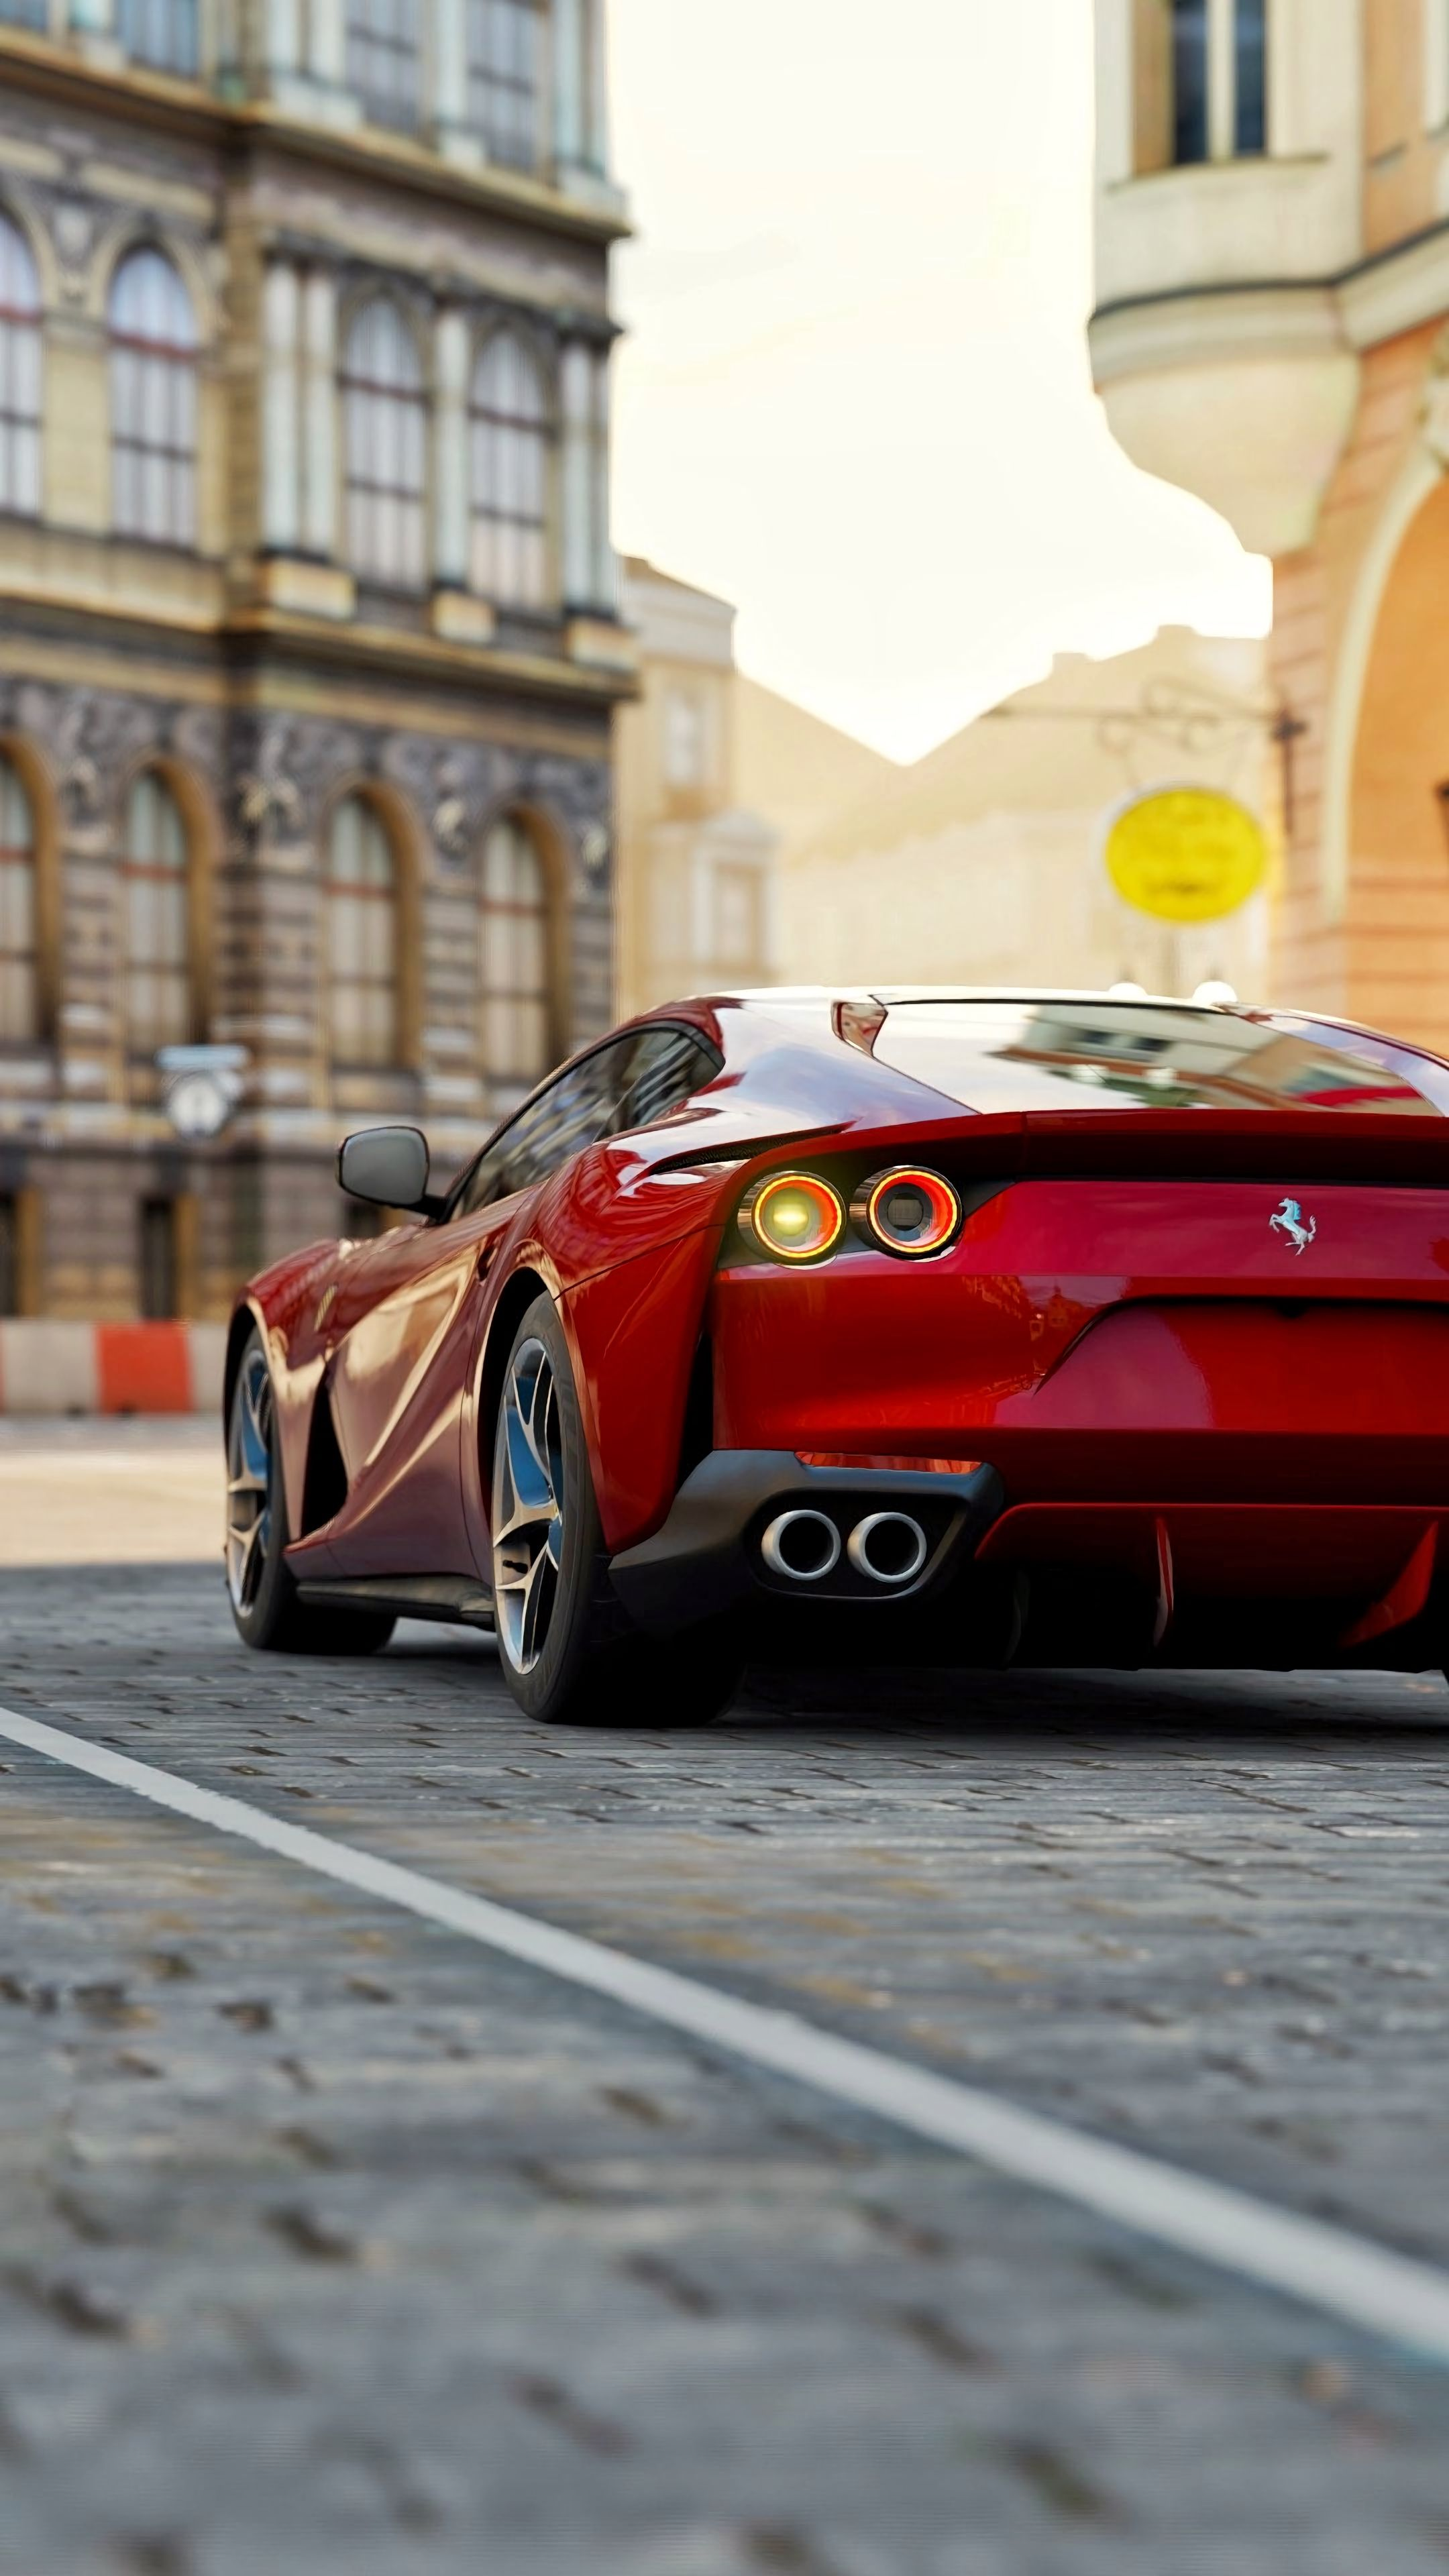 Ferrari Wallpaper 4k For Android